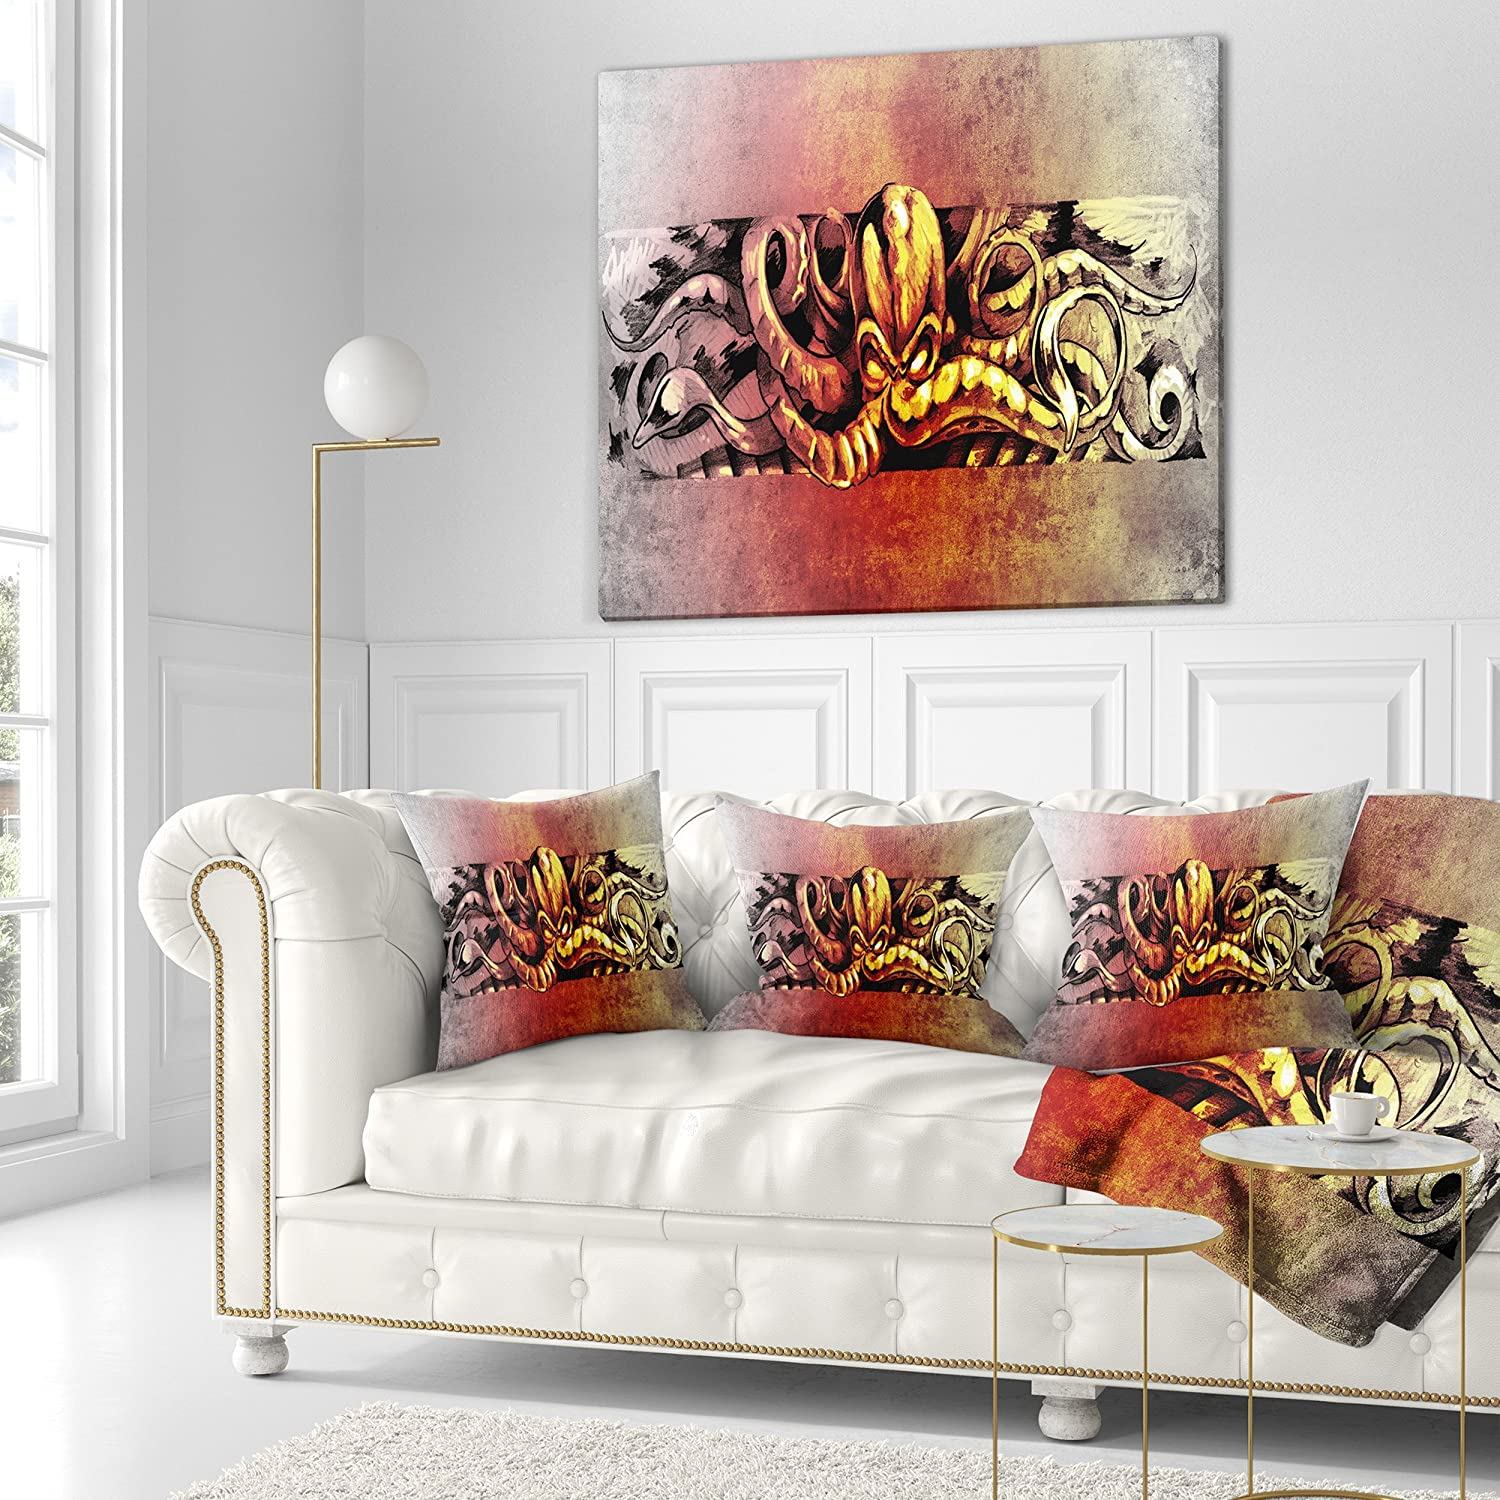 Sofa Throw Pillow 18 in Designart CU7986-18-18 Octopus Sketch in Yellow Shade Animal Cushion Cover for Living Room in x 18 in Insert Printed On Both Side